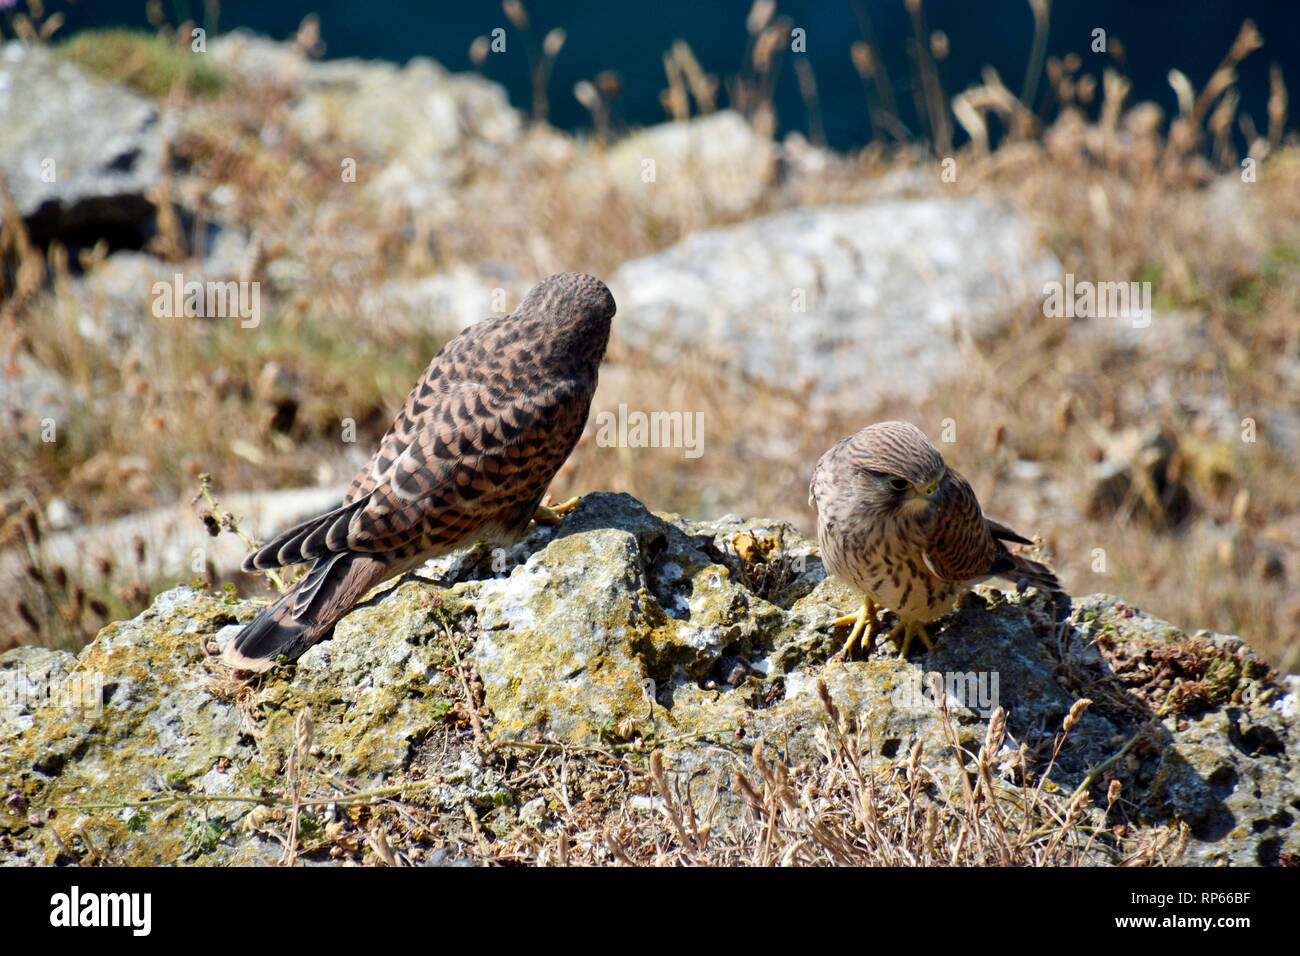 Young kestrels sitting on the cliffs at Durlston Country Park and National Nature Reserve, Swanage, Isle of Purbeck, Dorset, UK - Stock Image